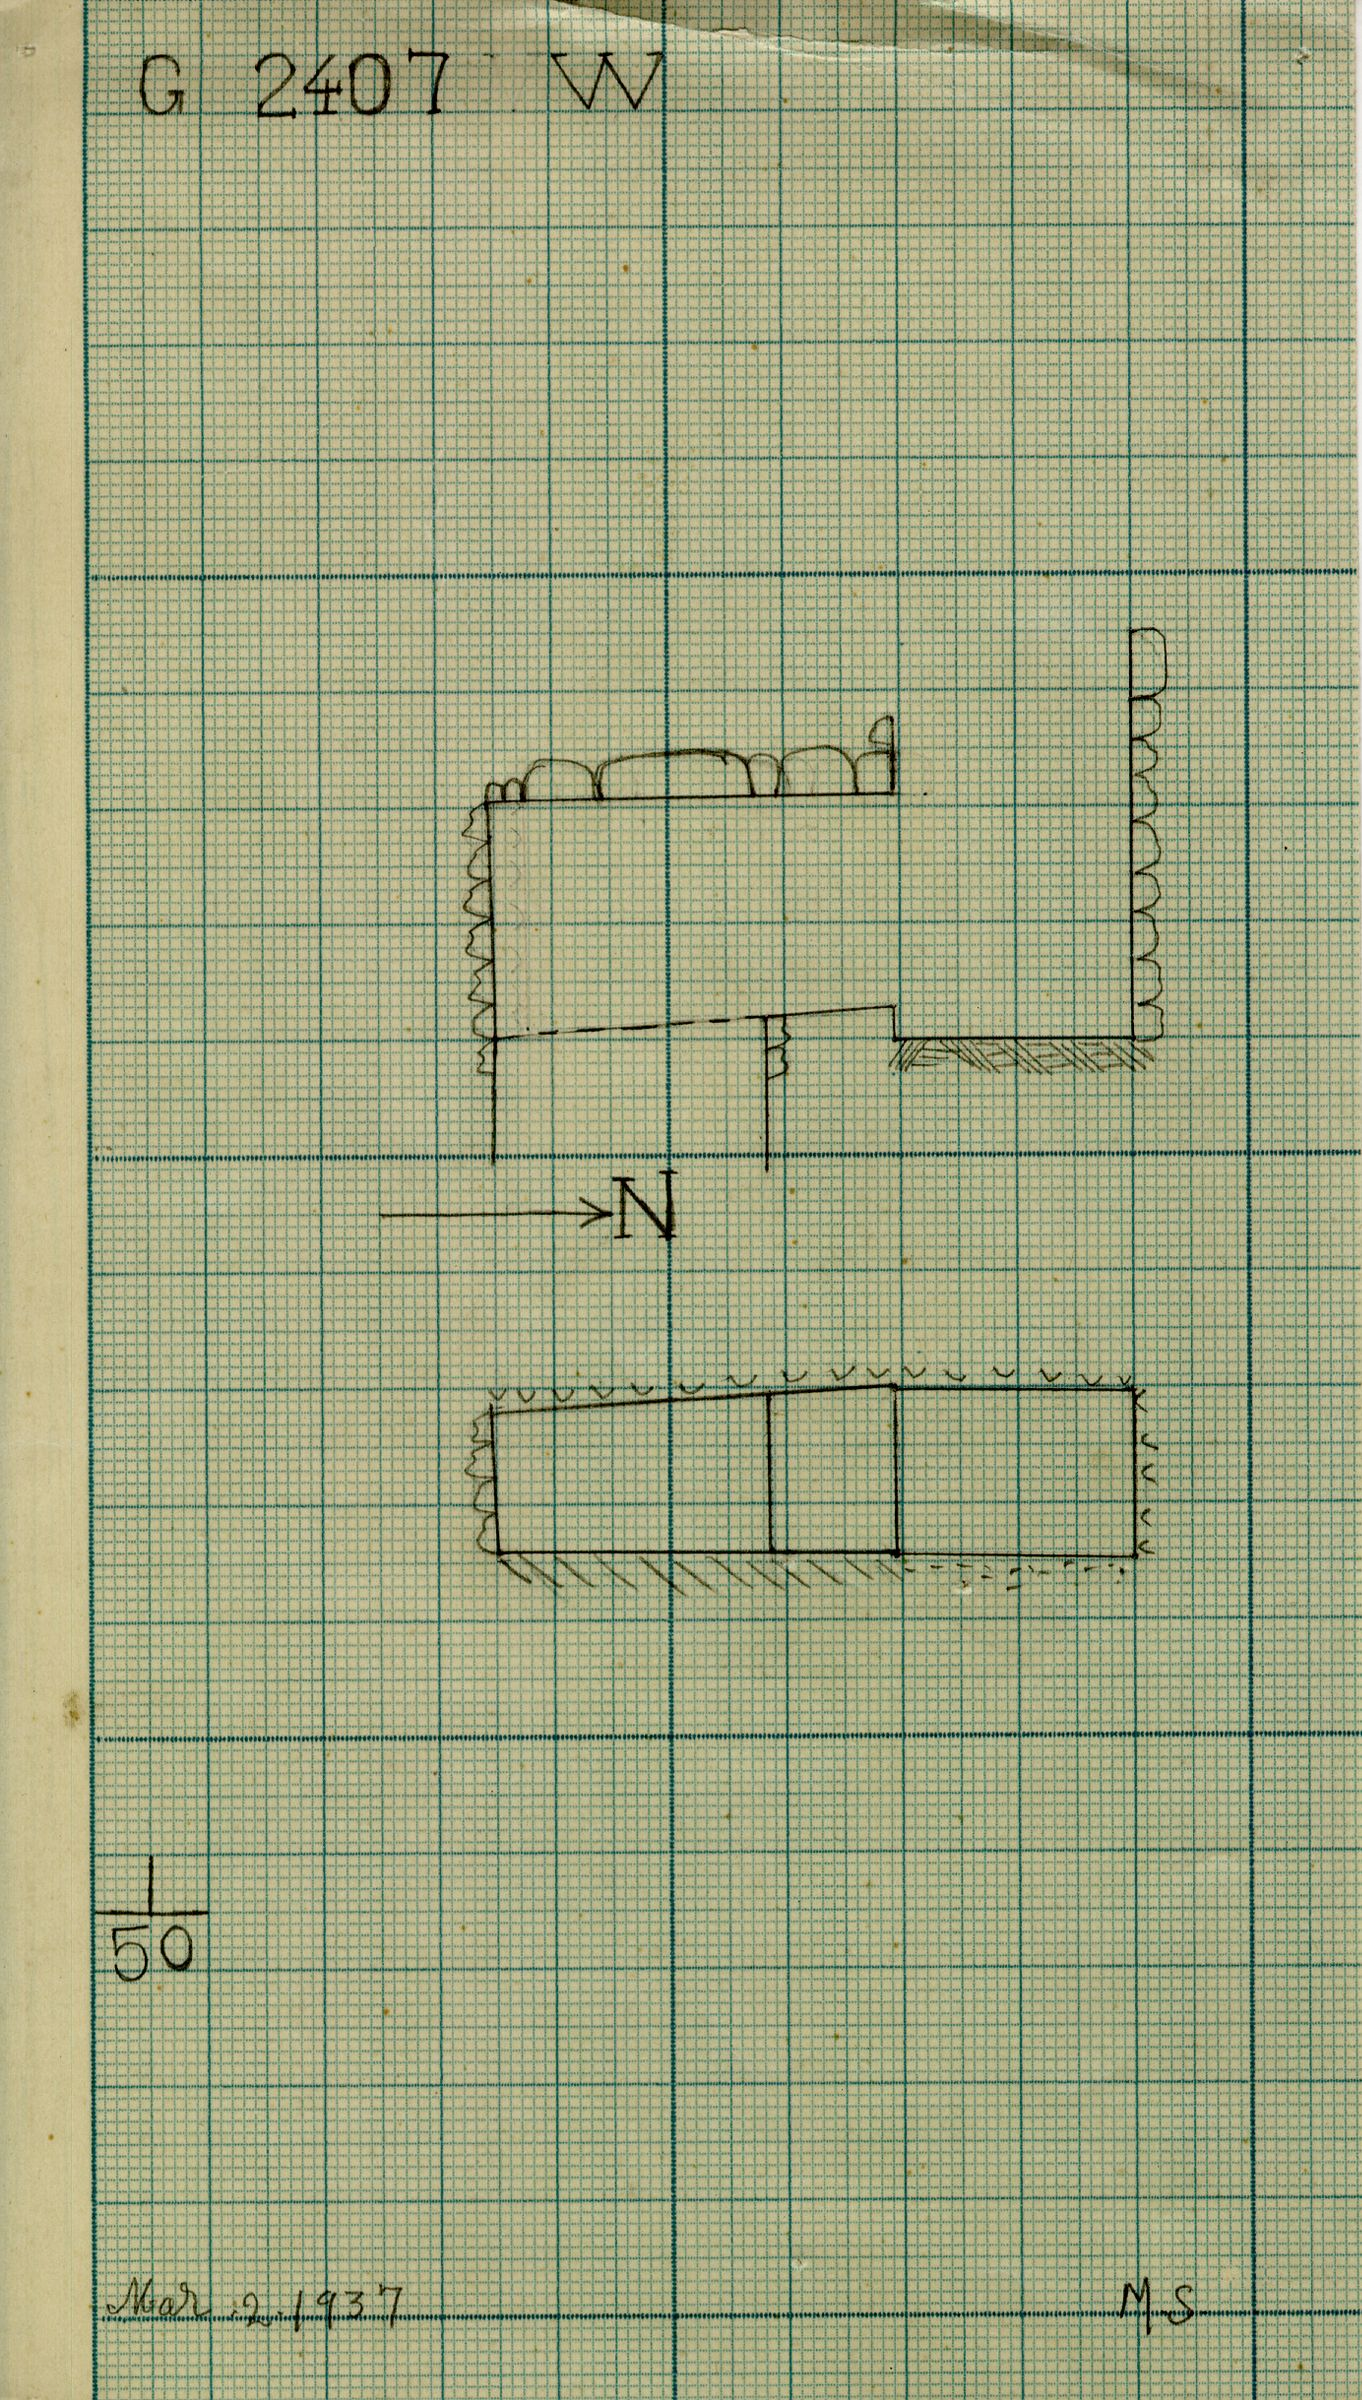 Maps and plans: G 2407, Shaft W